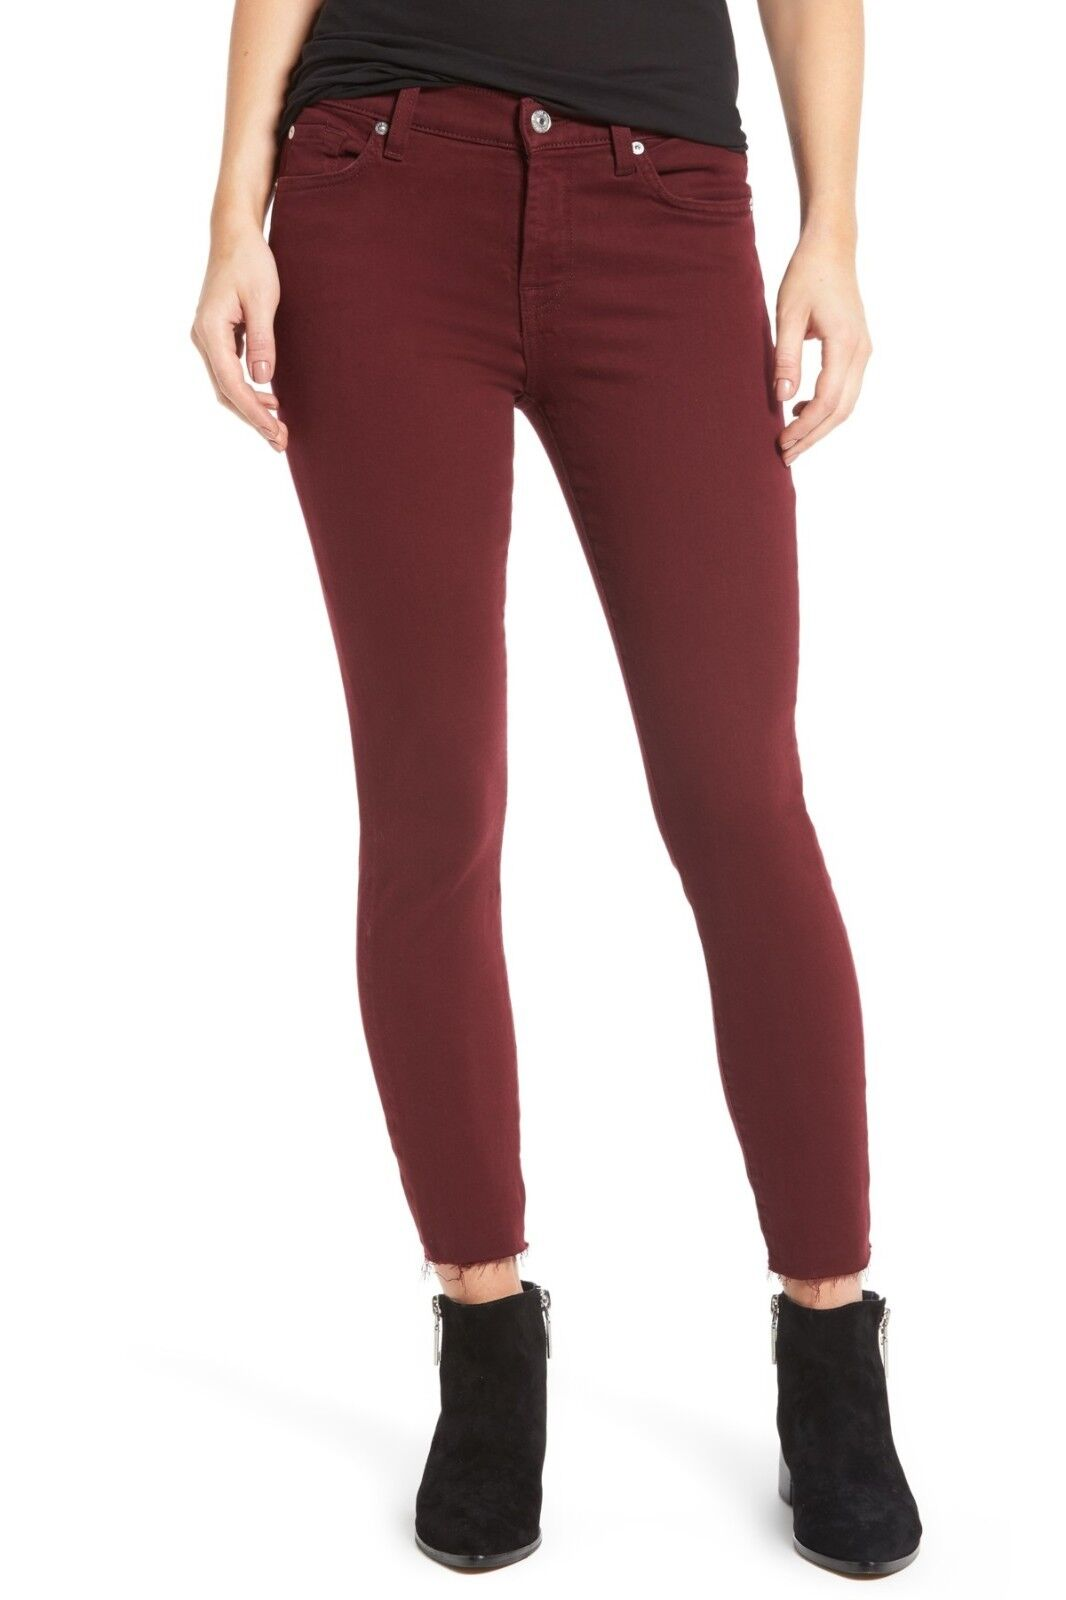 199 NWT 7 FOR ALL MANKIND Sz26 THE ANKLE MIDRISE SKINNY RAW HEM JEANS MERLOT